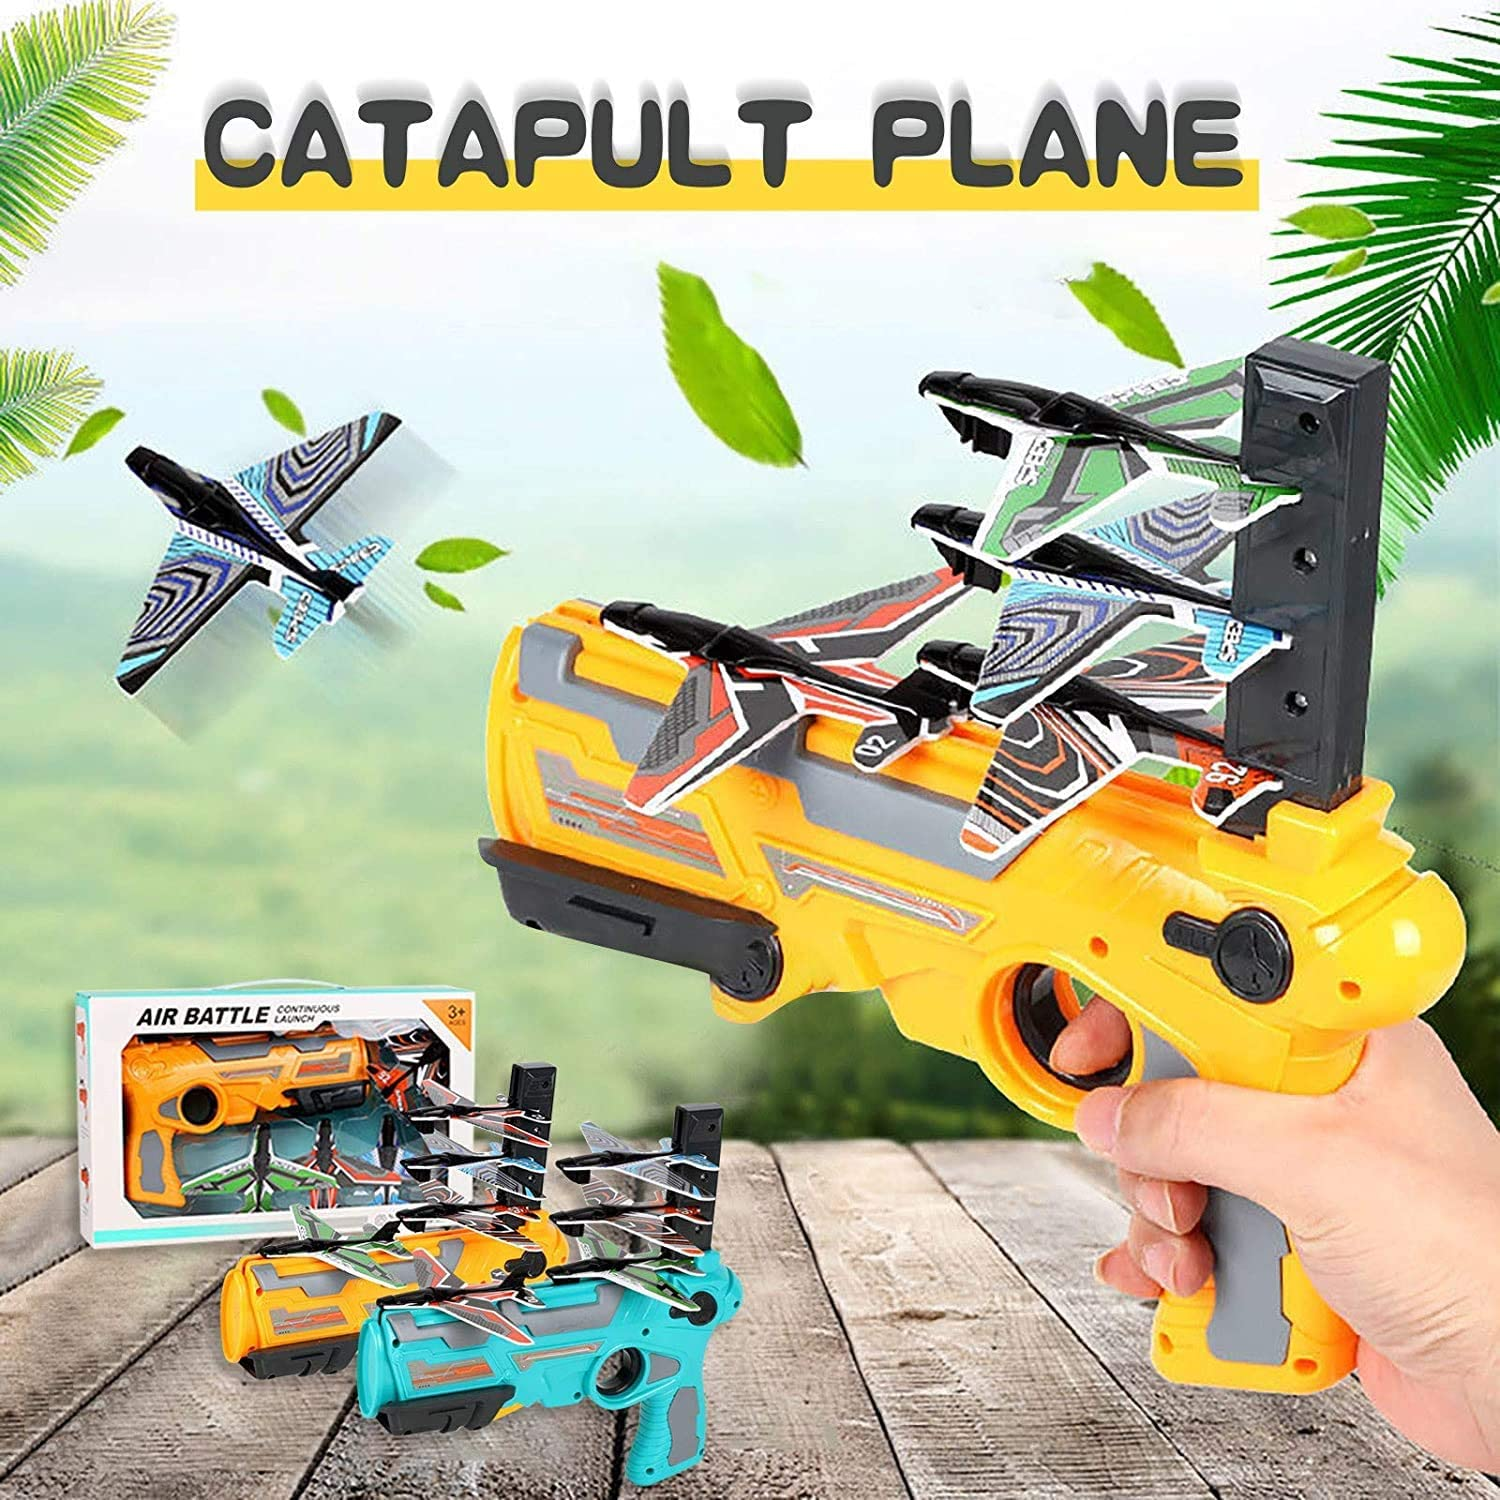 Bubble Catapult Airplane Orange + 4 Planes Toy Airplane Non-Slip Play effortlessly 4 Gliders one-Click pop-up Launcher Toy Streamlined Appearance